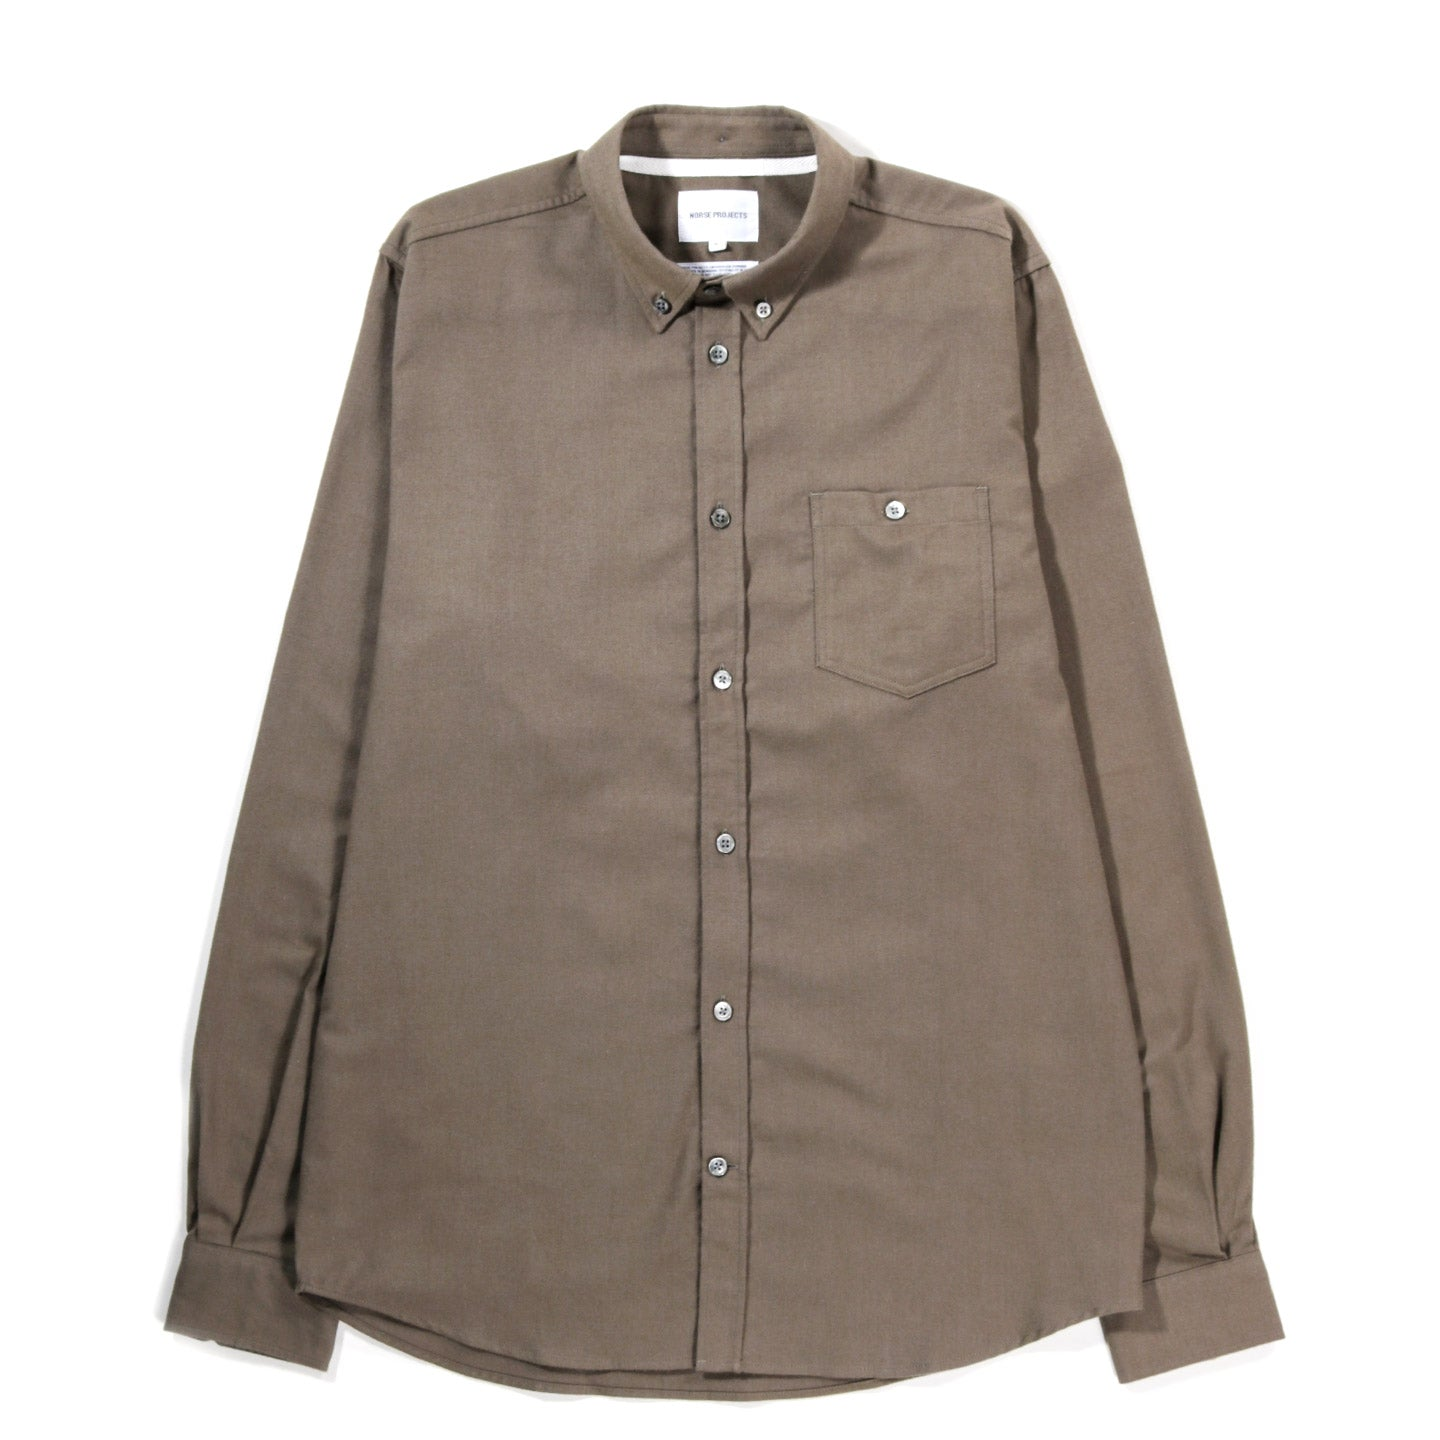 NORSE PROJECTS AROS LIGHT TWILL CHINO KHAKI